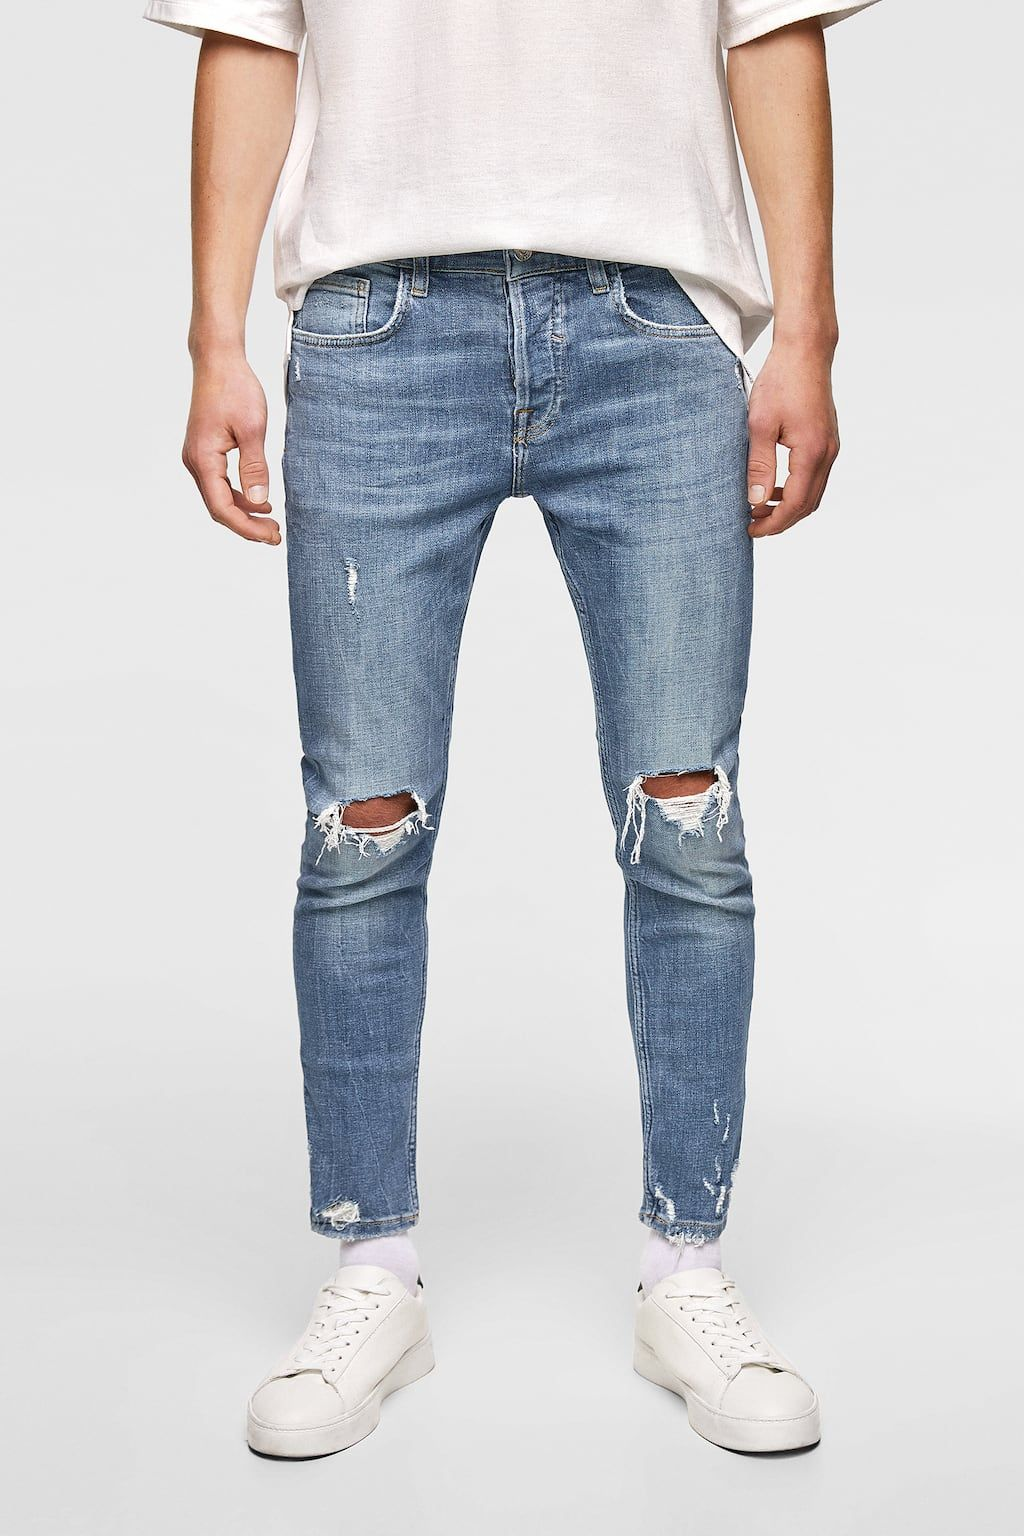 dd657556b1 Image 2 of RAW EDGE SKINNY JEANS from Zara | Outfits, clothes ...